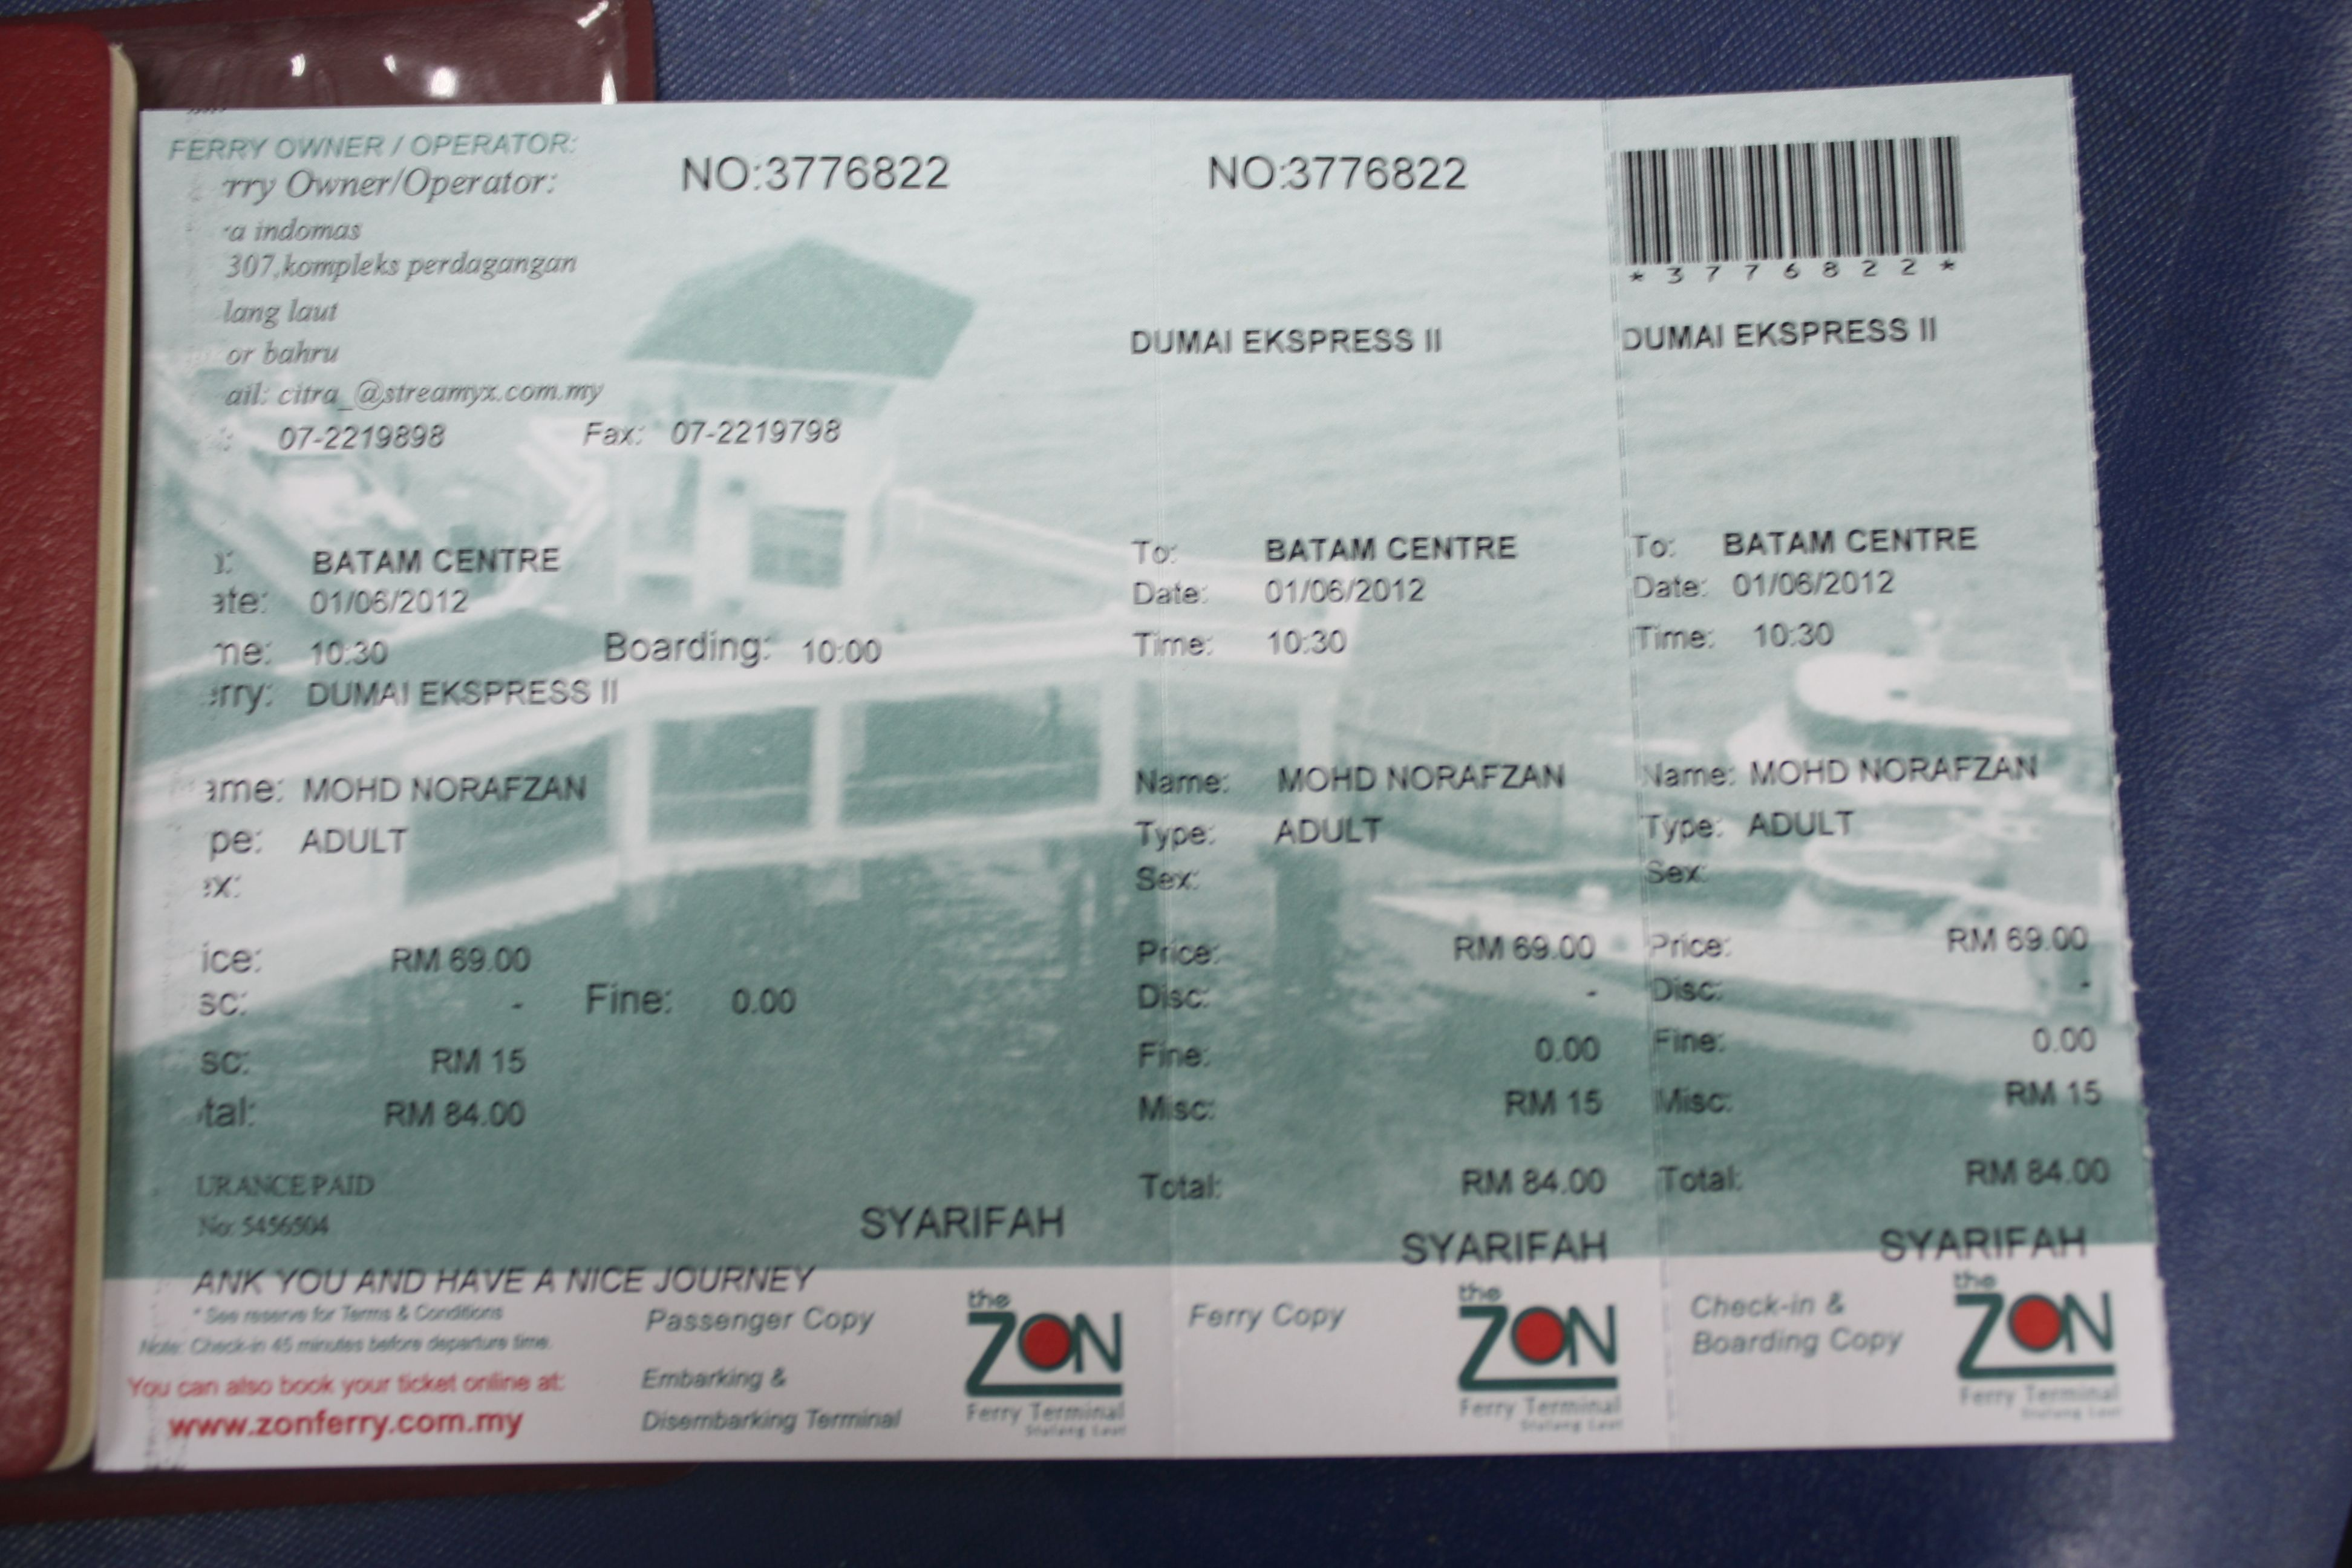 This Ticket Departure From Stulang Laut Johor To Batam